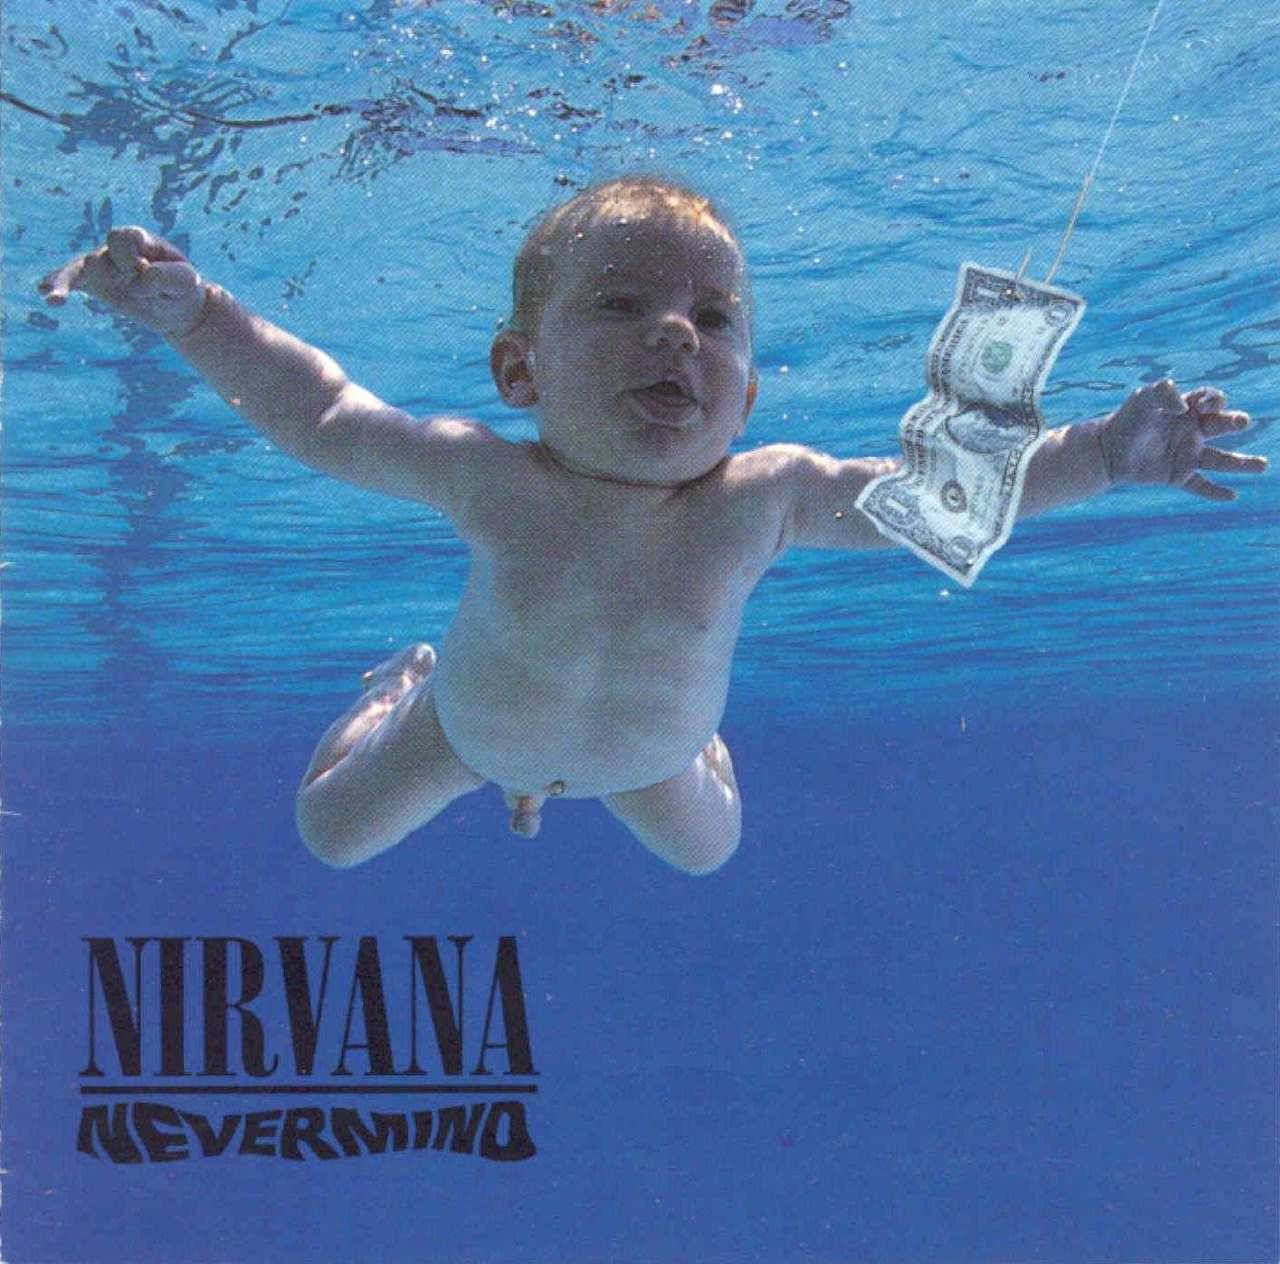 BACK IN THE DAY |9/24/91| Nirvana released their second album, Nevermind, on DGC records.